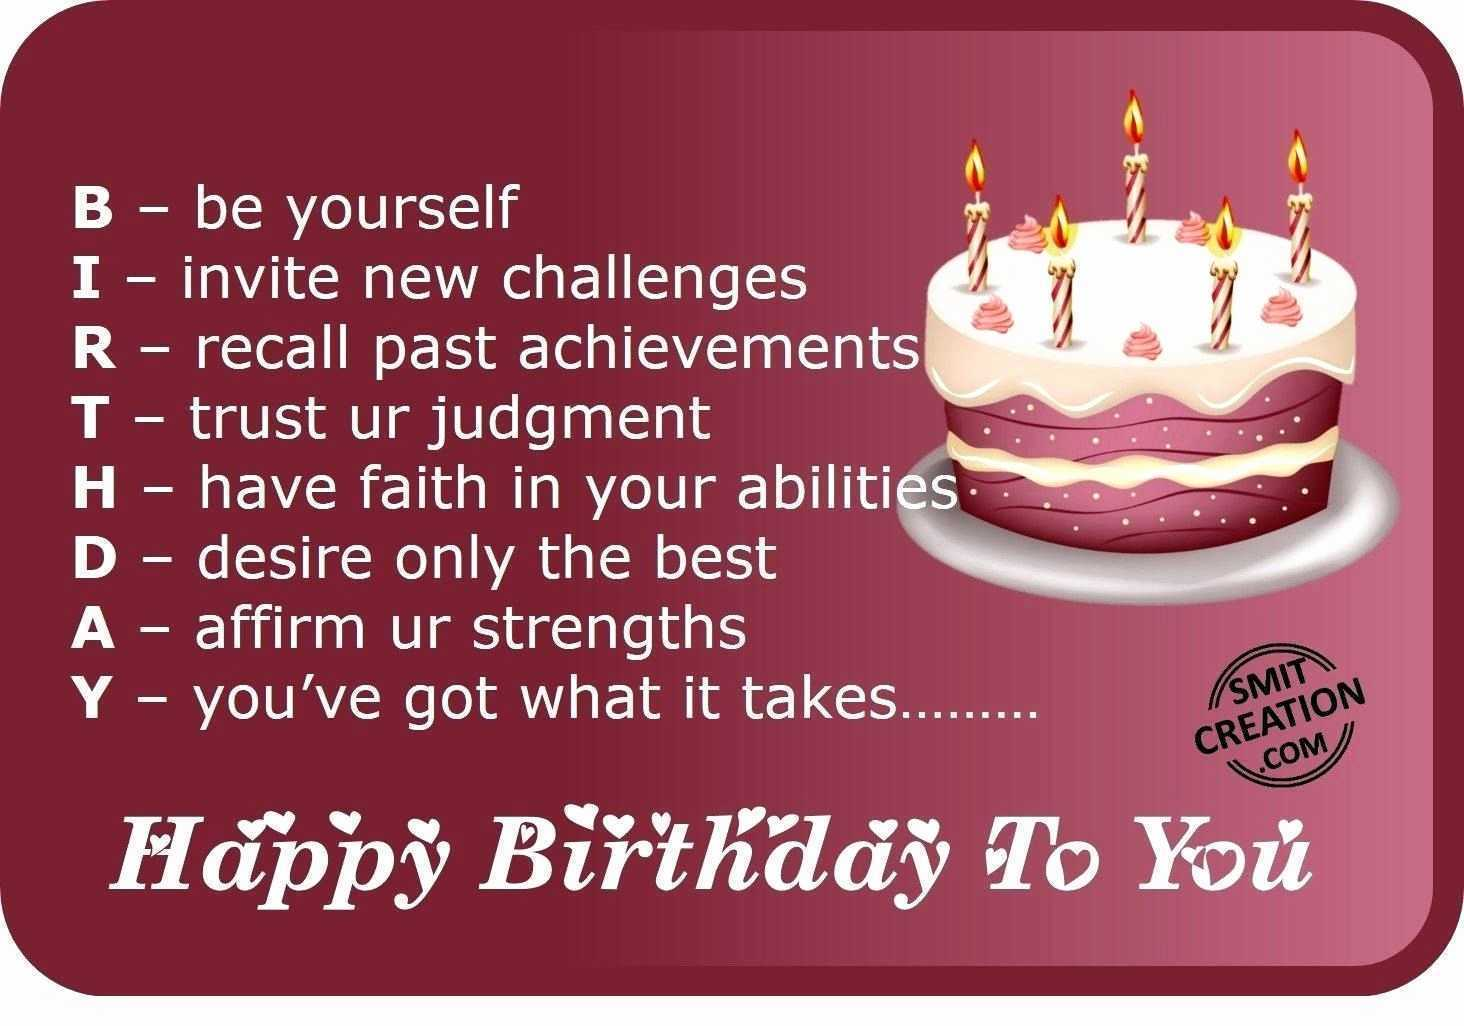 happy birthday message for cousin female ; birthday-wishes-for-cousin-female-luxury-happy-birthday-wishes-to-a-female-cousin-inspirational-of-birthday-wishes-for-cousin-female